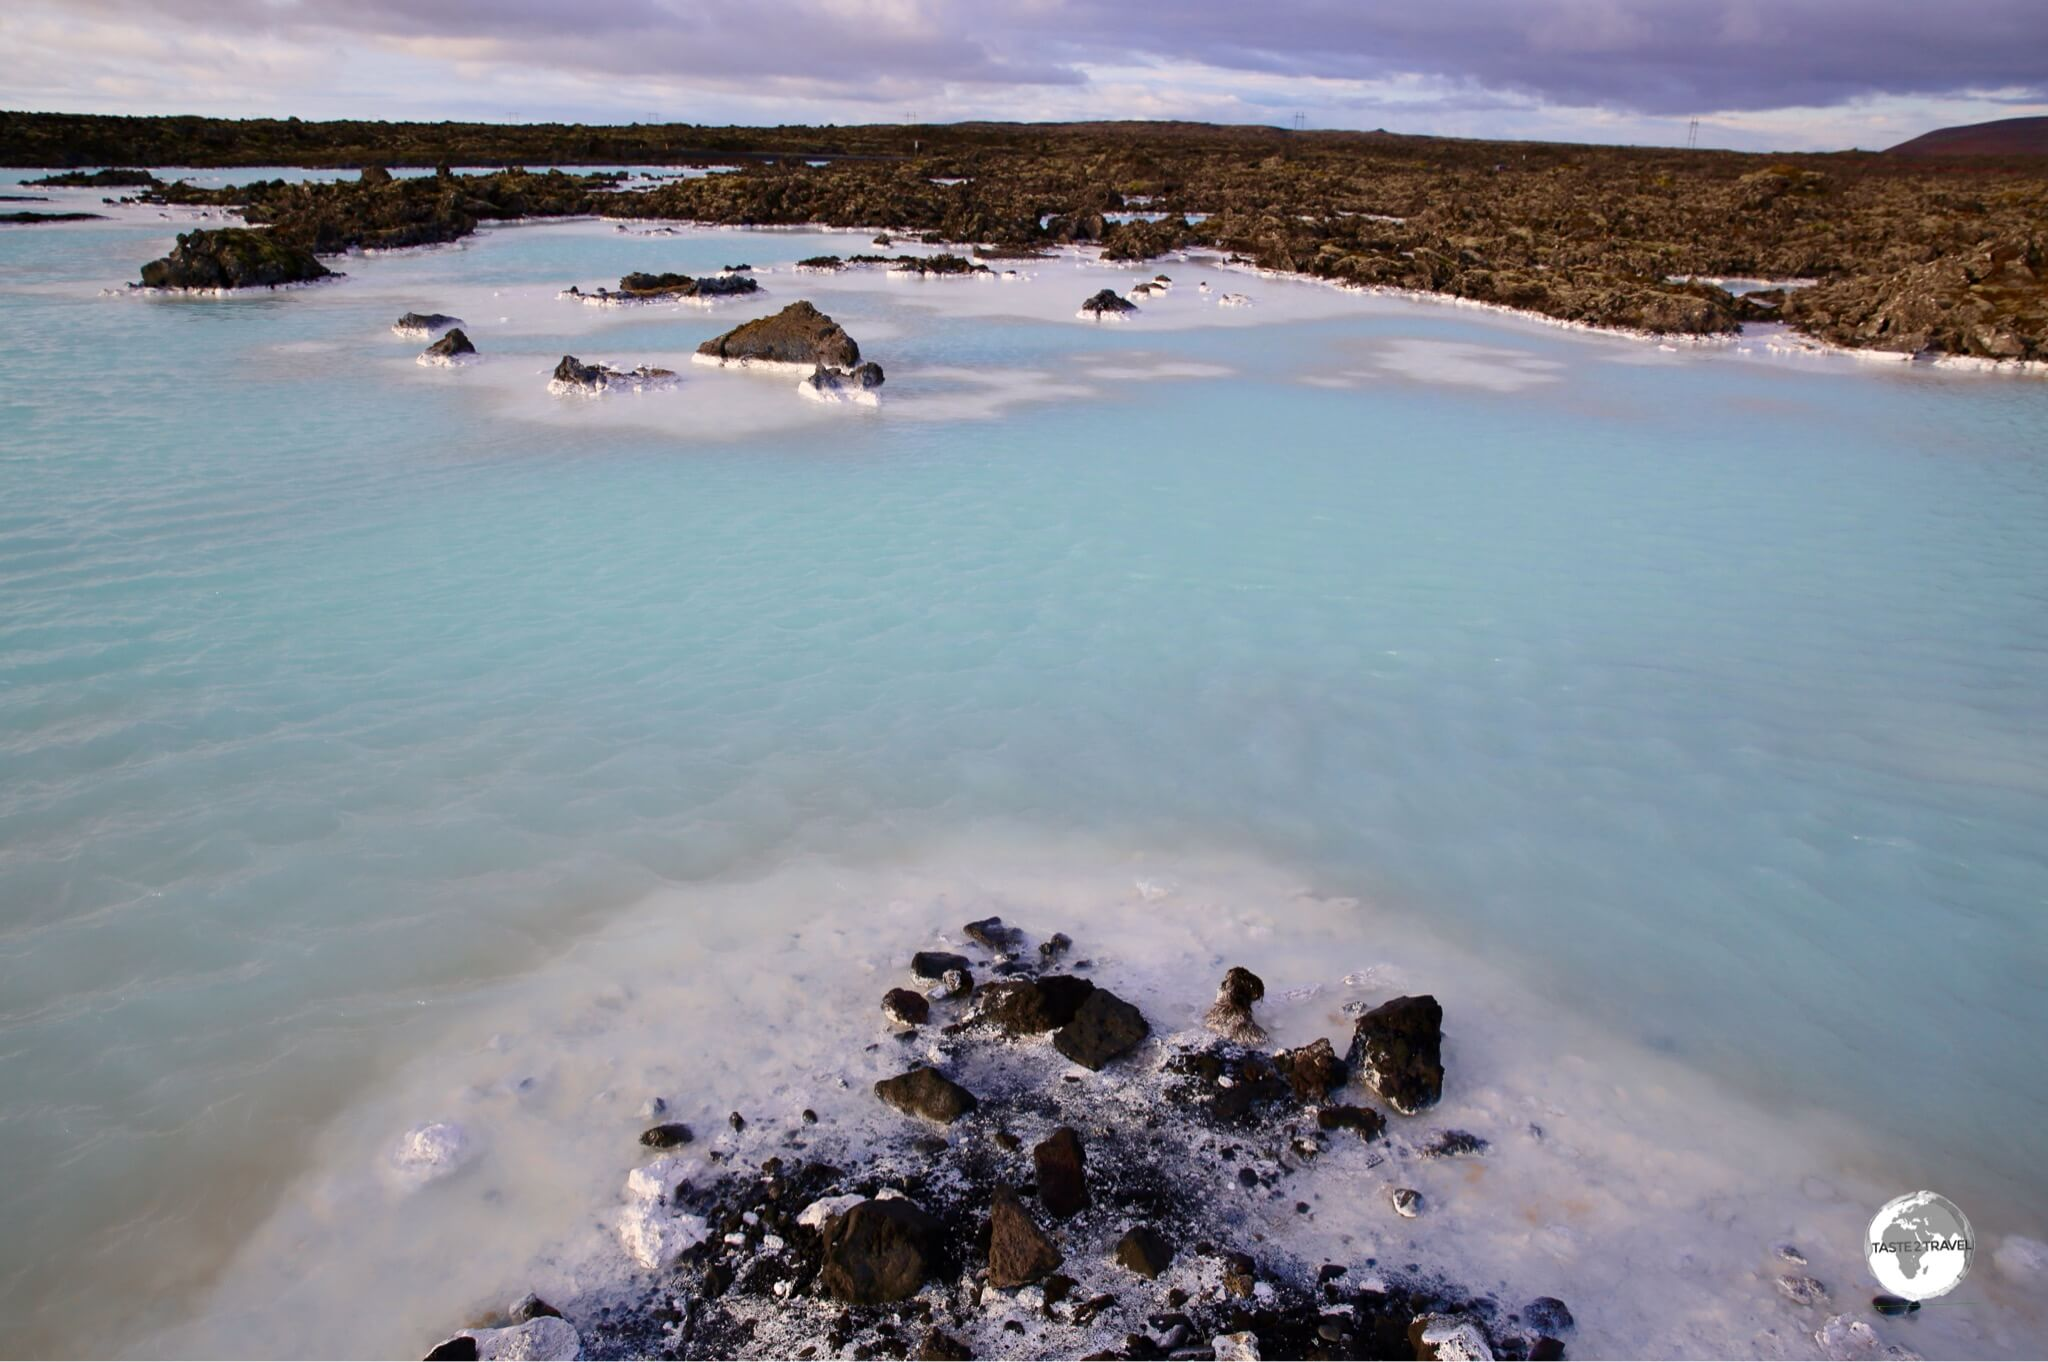 The milky-coloured water of Blue Lagoon.